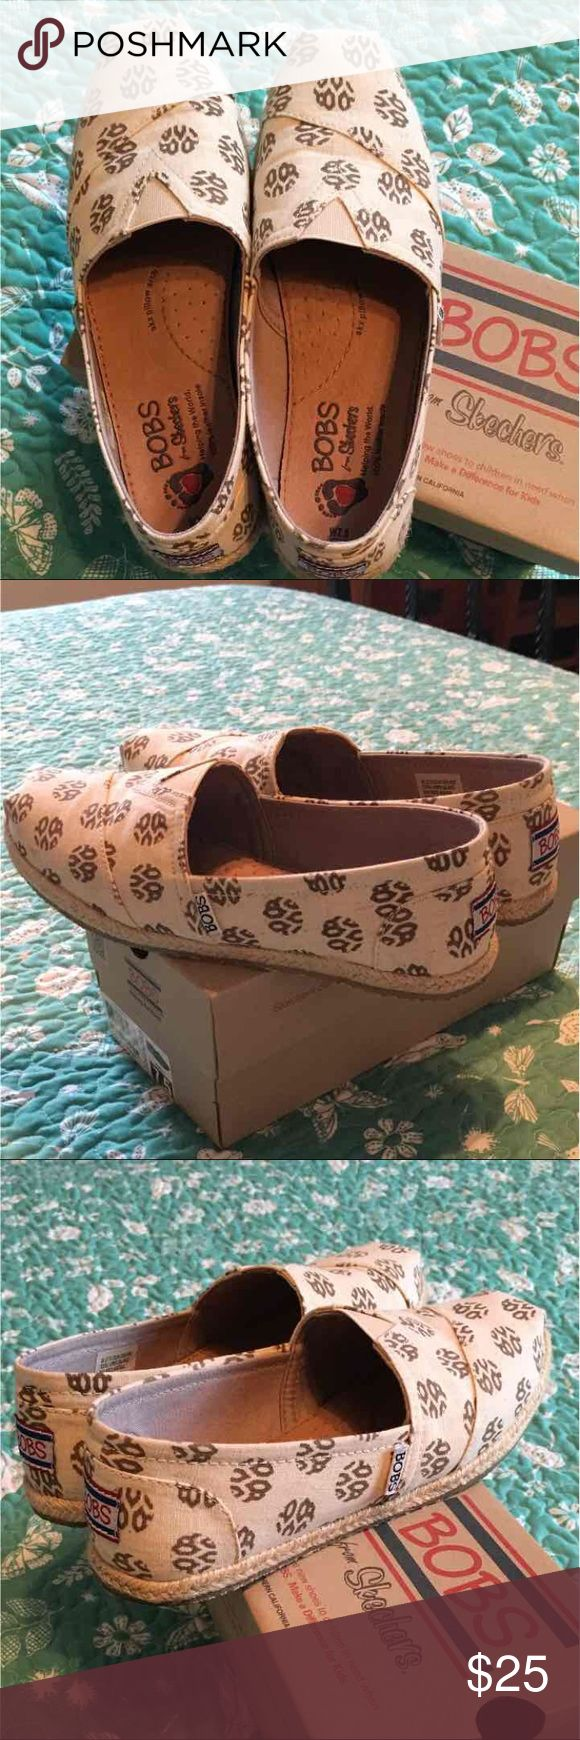 Bobs from Skechers Bobs from Skechers, slip on, natural/brown, in EUC, womens 7.5! Skechers Shoes Flats & Loafers